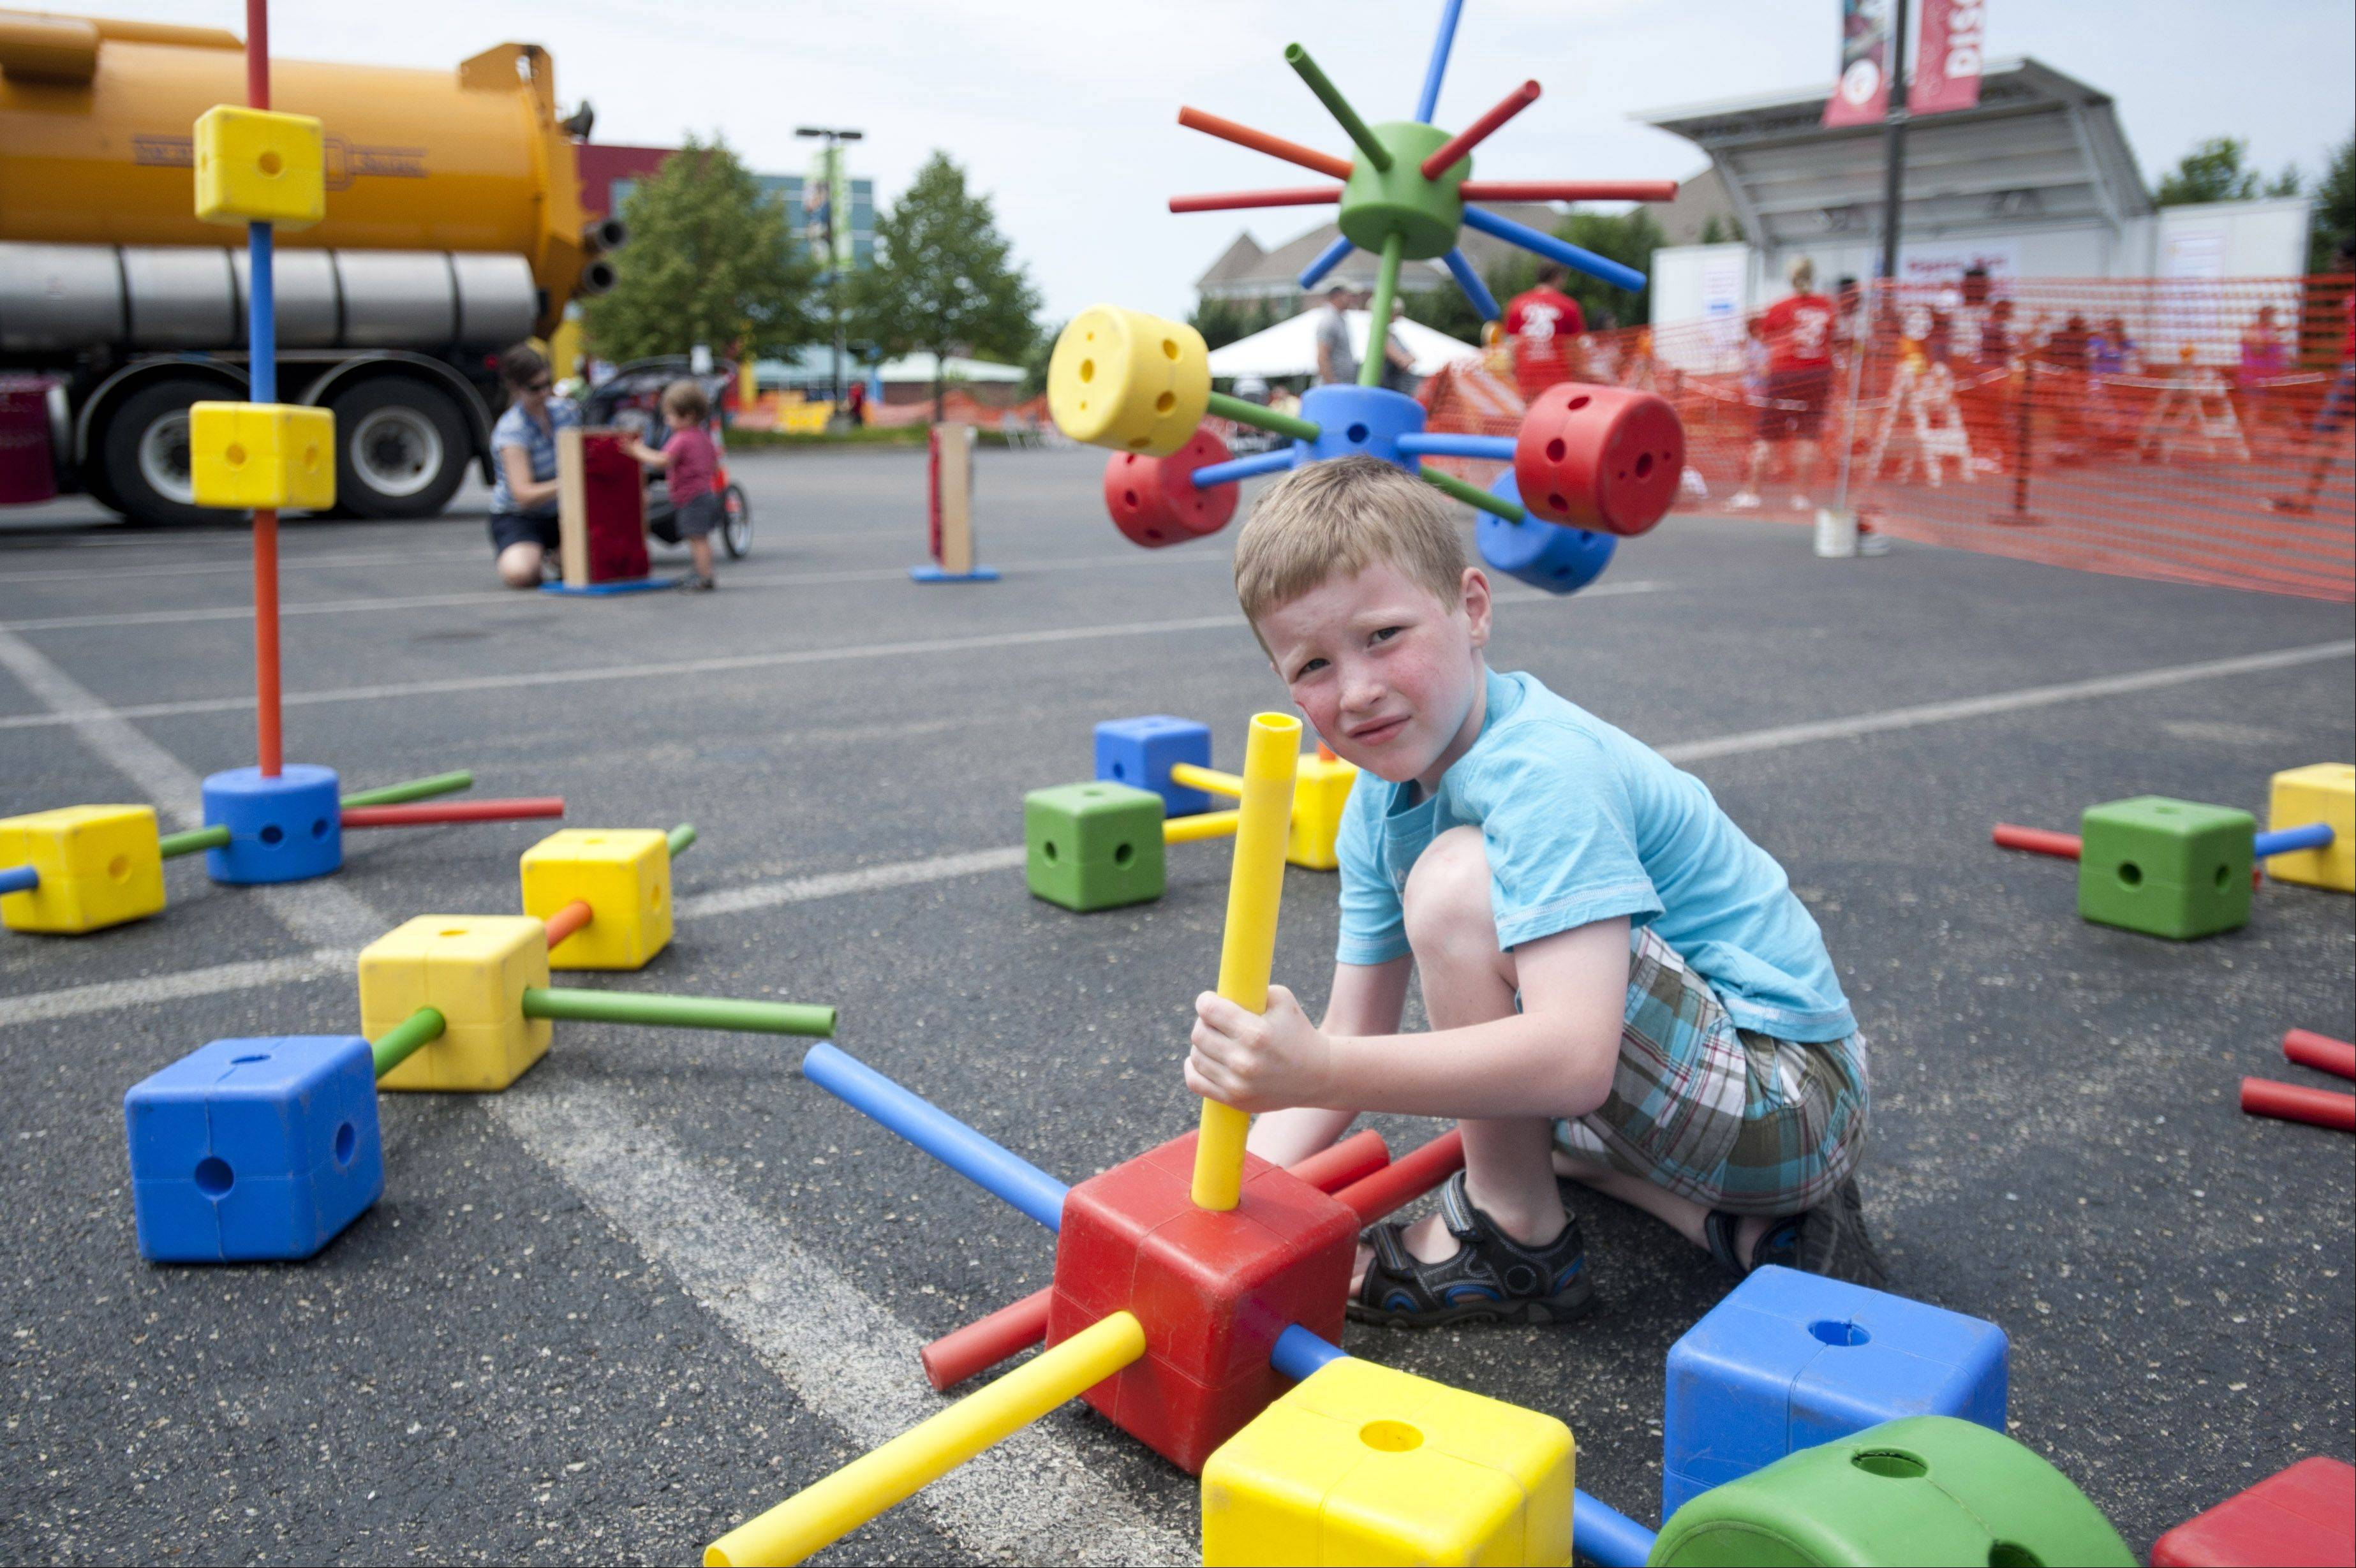 Braeden Meeker, 6, plays with building blocks Sunday during the DuPage Children's Museum's 25th anniversary celebration. Those who attended enjoyed train rides, art activities, live music and the ever popular Touch-a-Truck outside the museum.